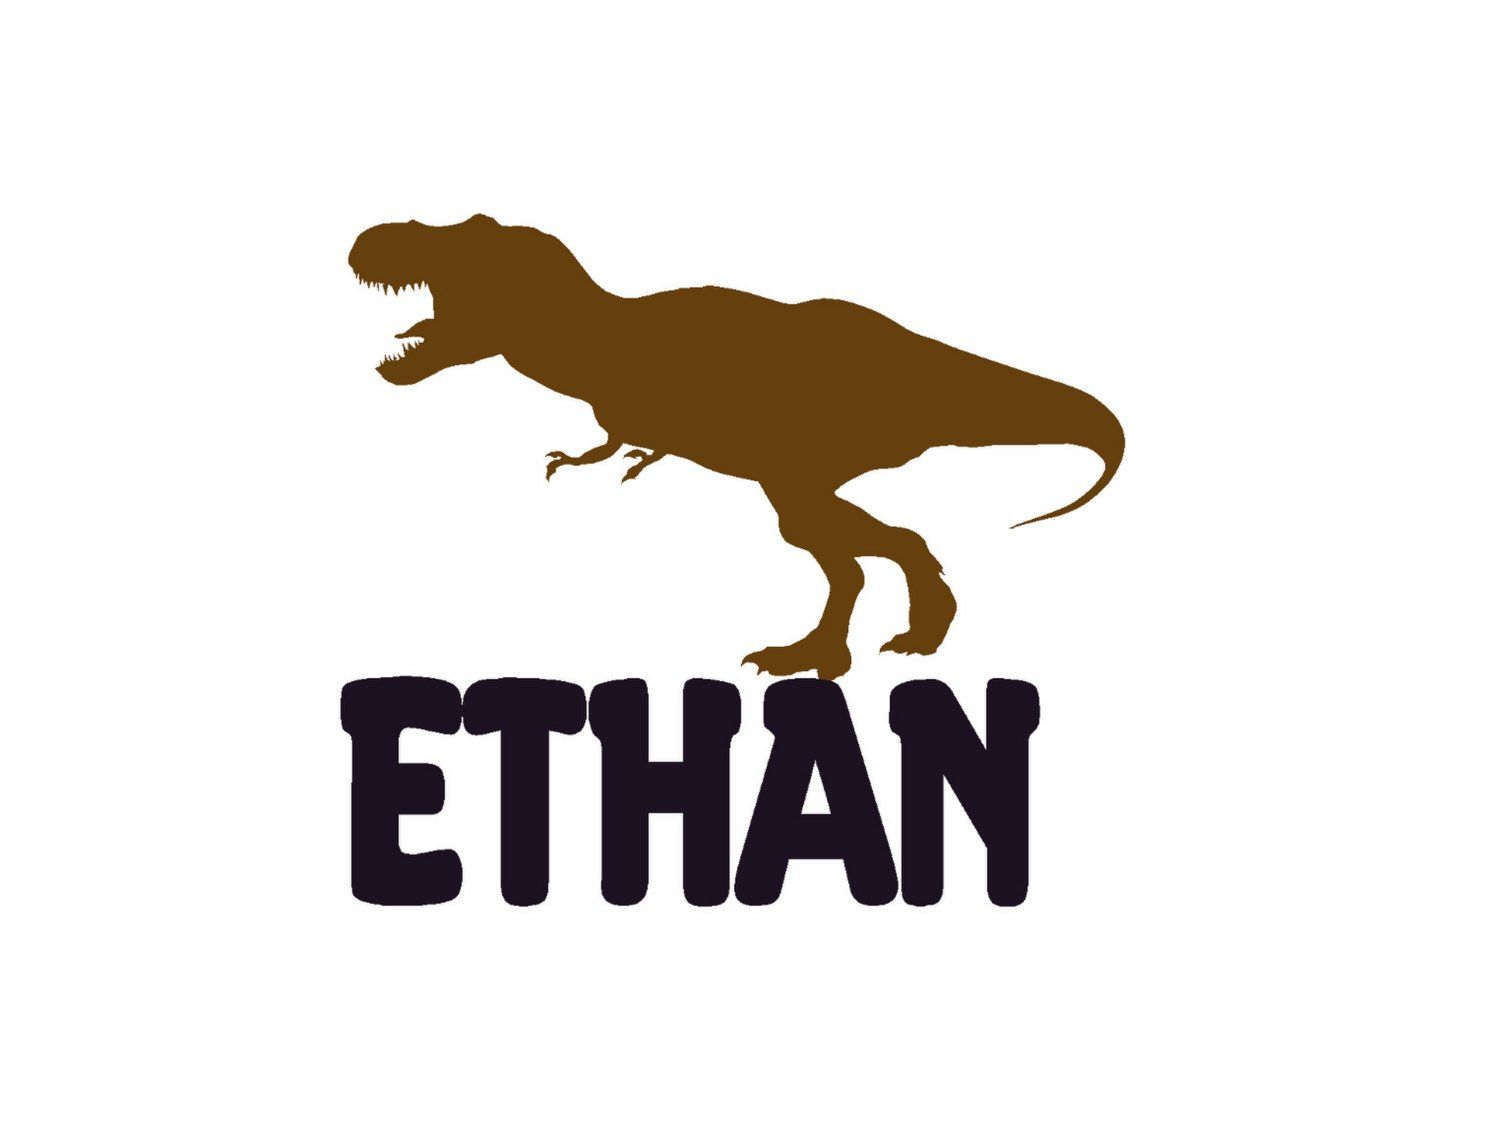 Boy Name Decal Personalized Vinyl Decals Dinosaur Wall - Custom vinyl wall decals dinosaur